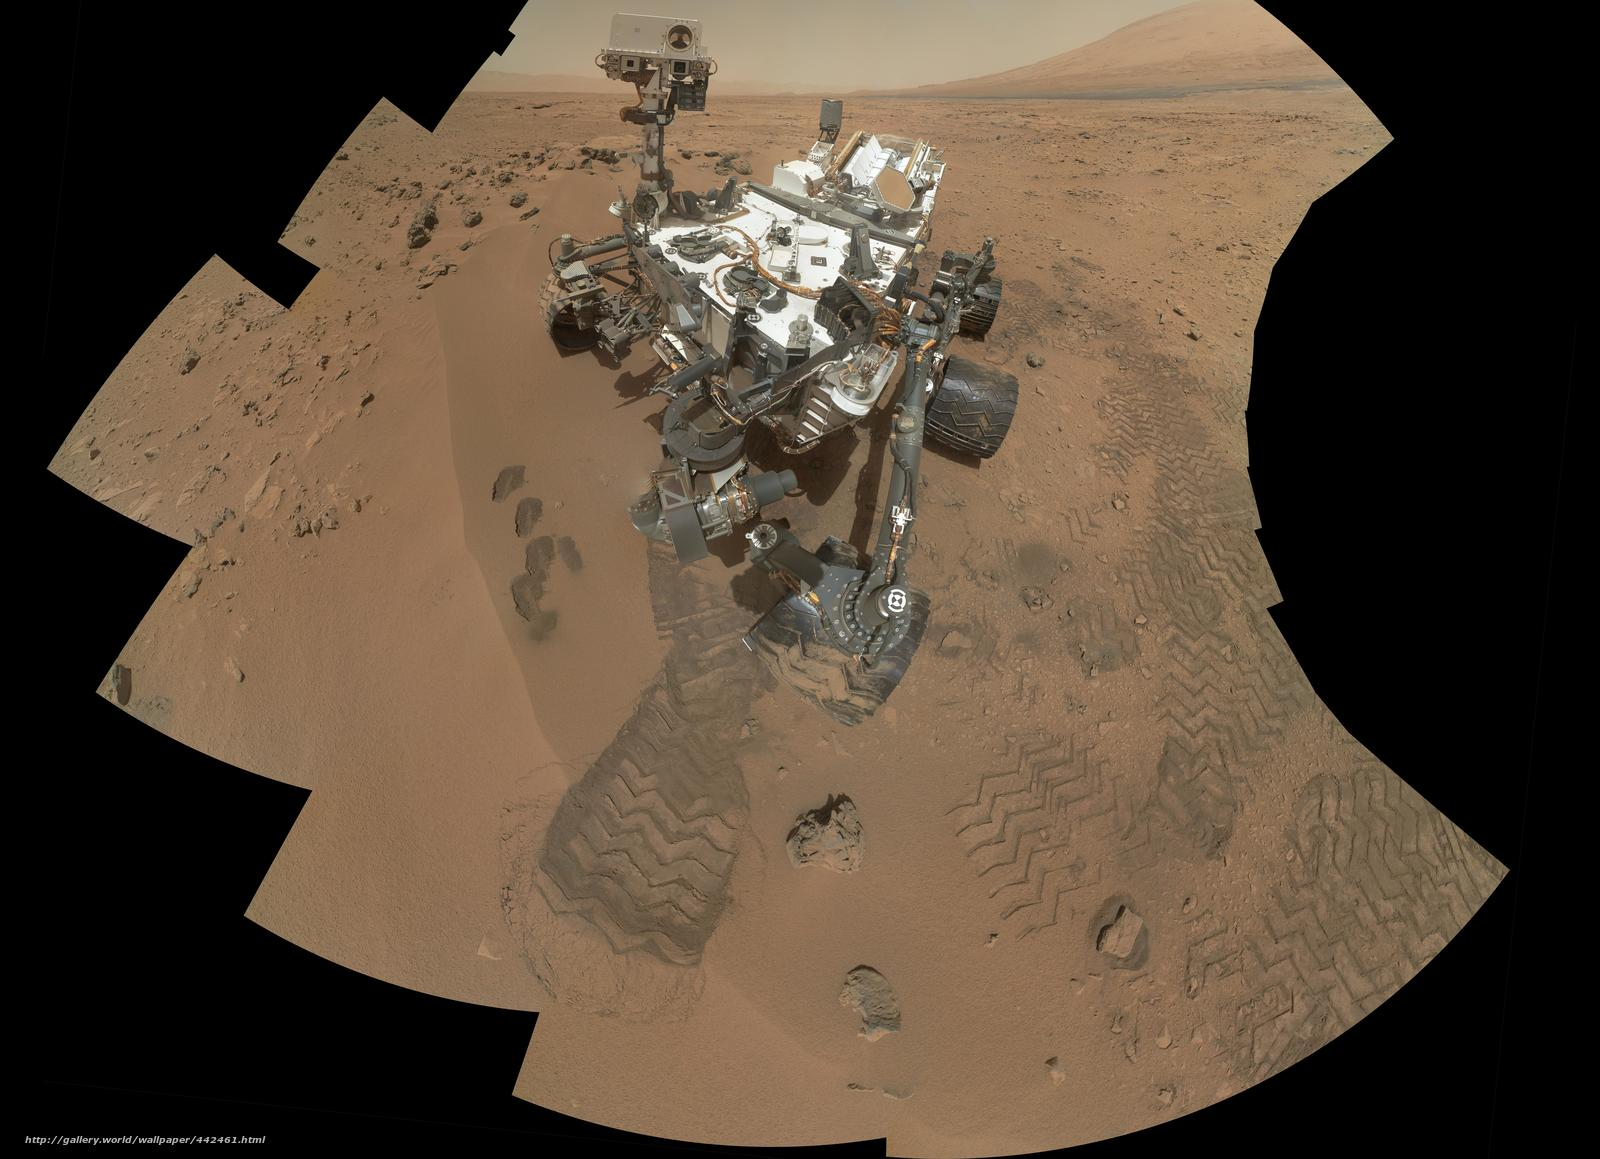 Download wallpaper curiosity,  rover at rocknest,  on mars free desktop wallpaper in the resolution 11119x8056 — picture №442461